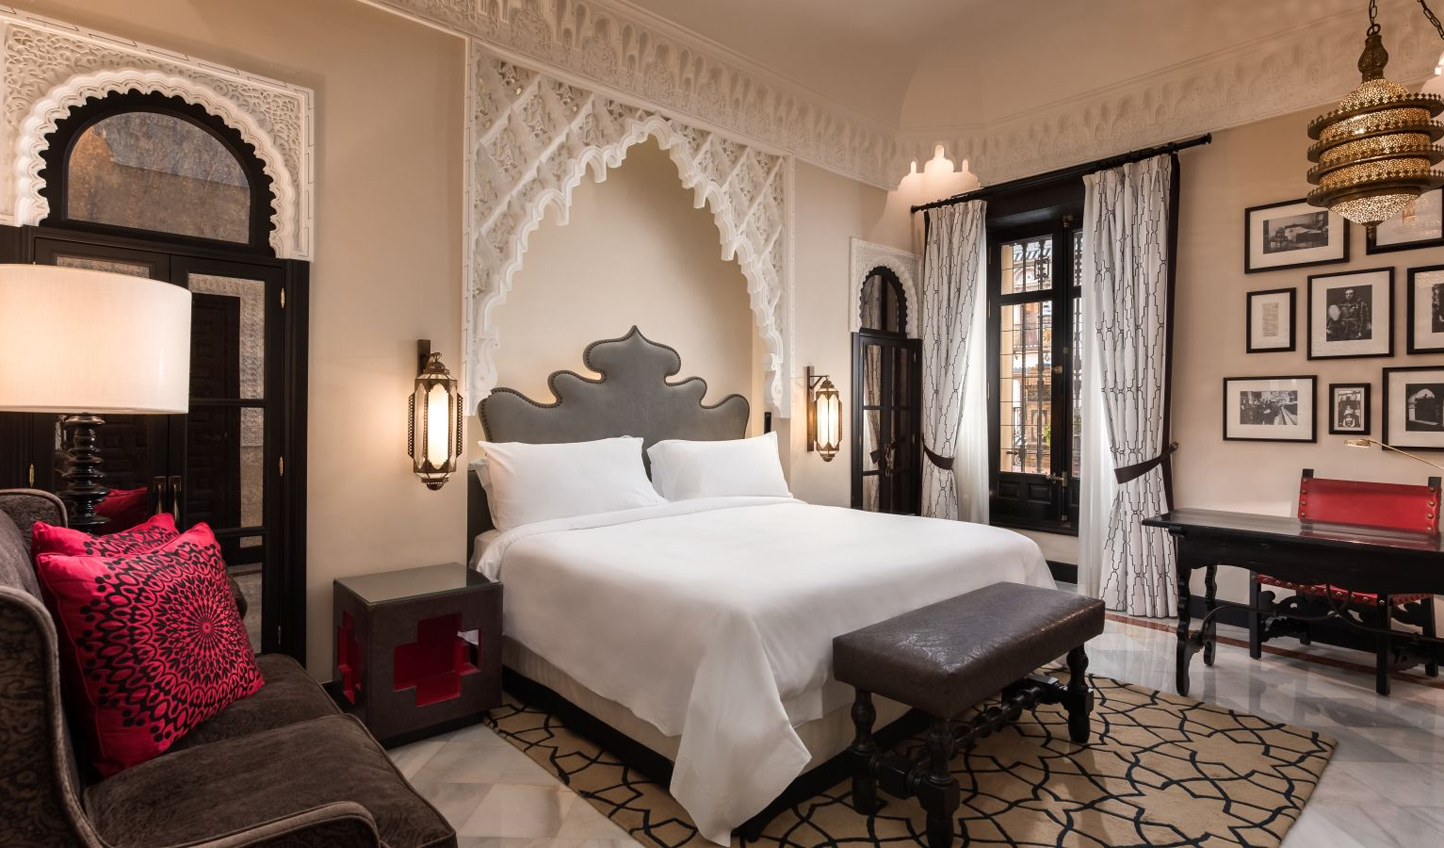 Beautiful rooms with touches of Moorish design